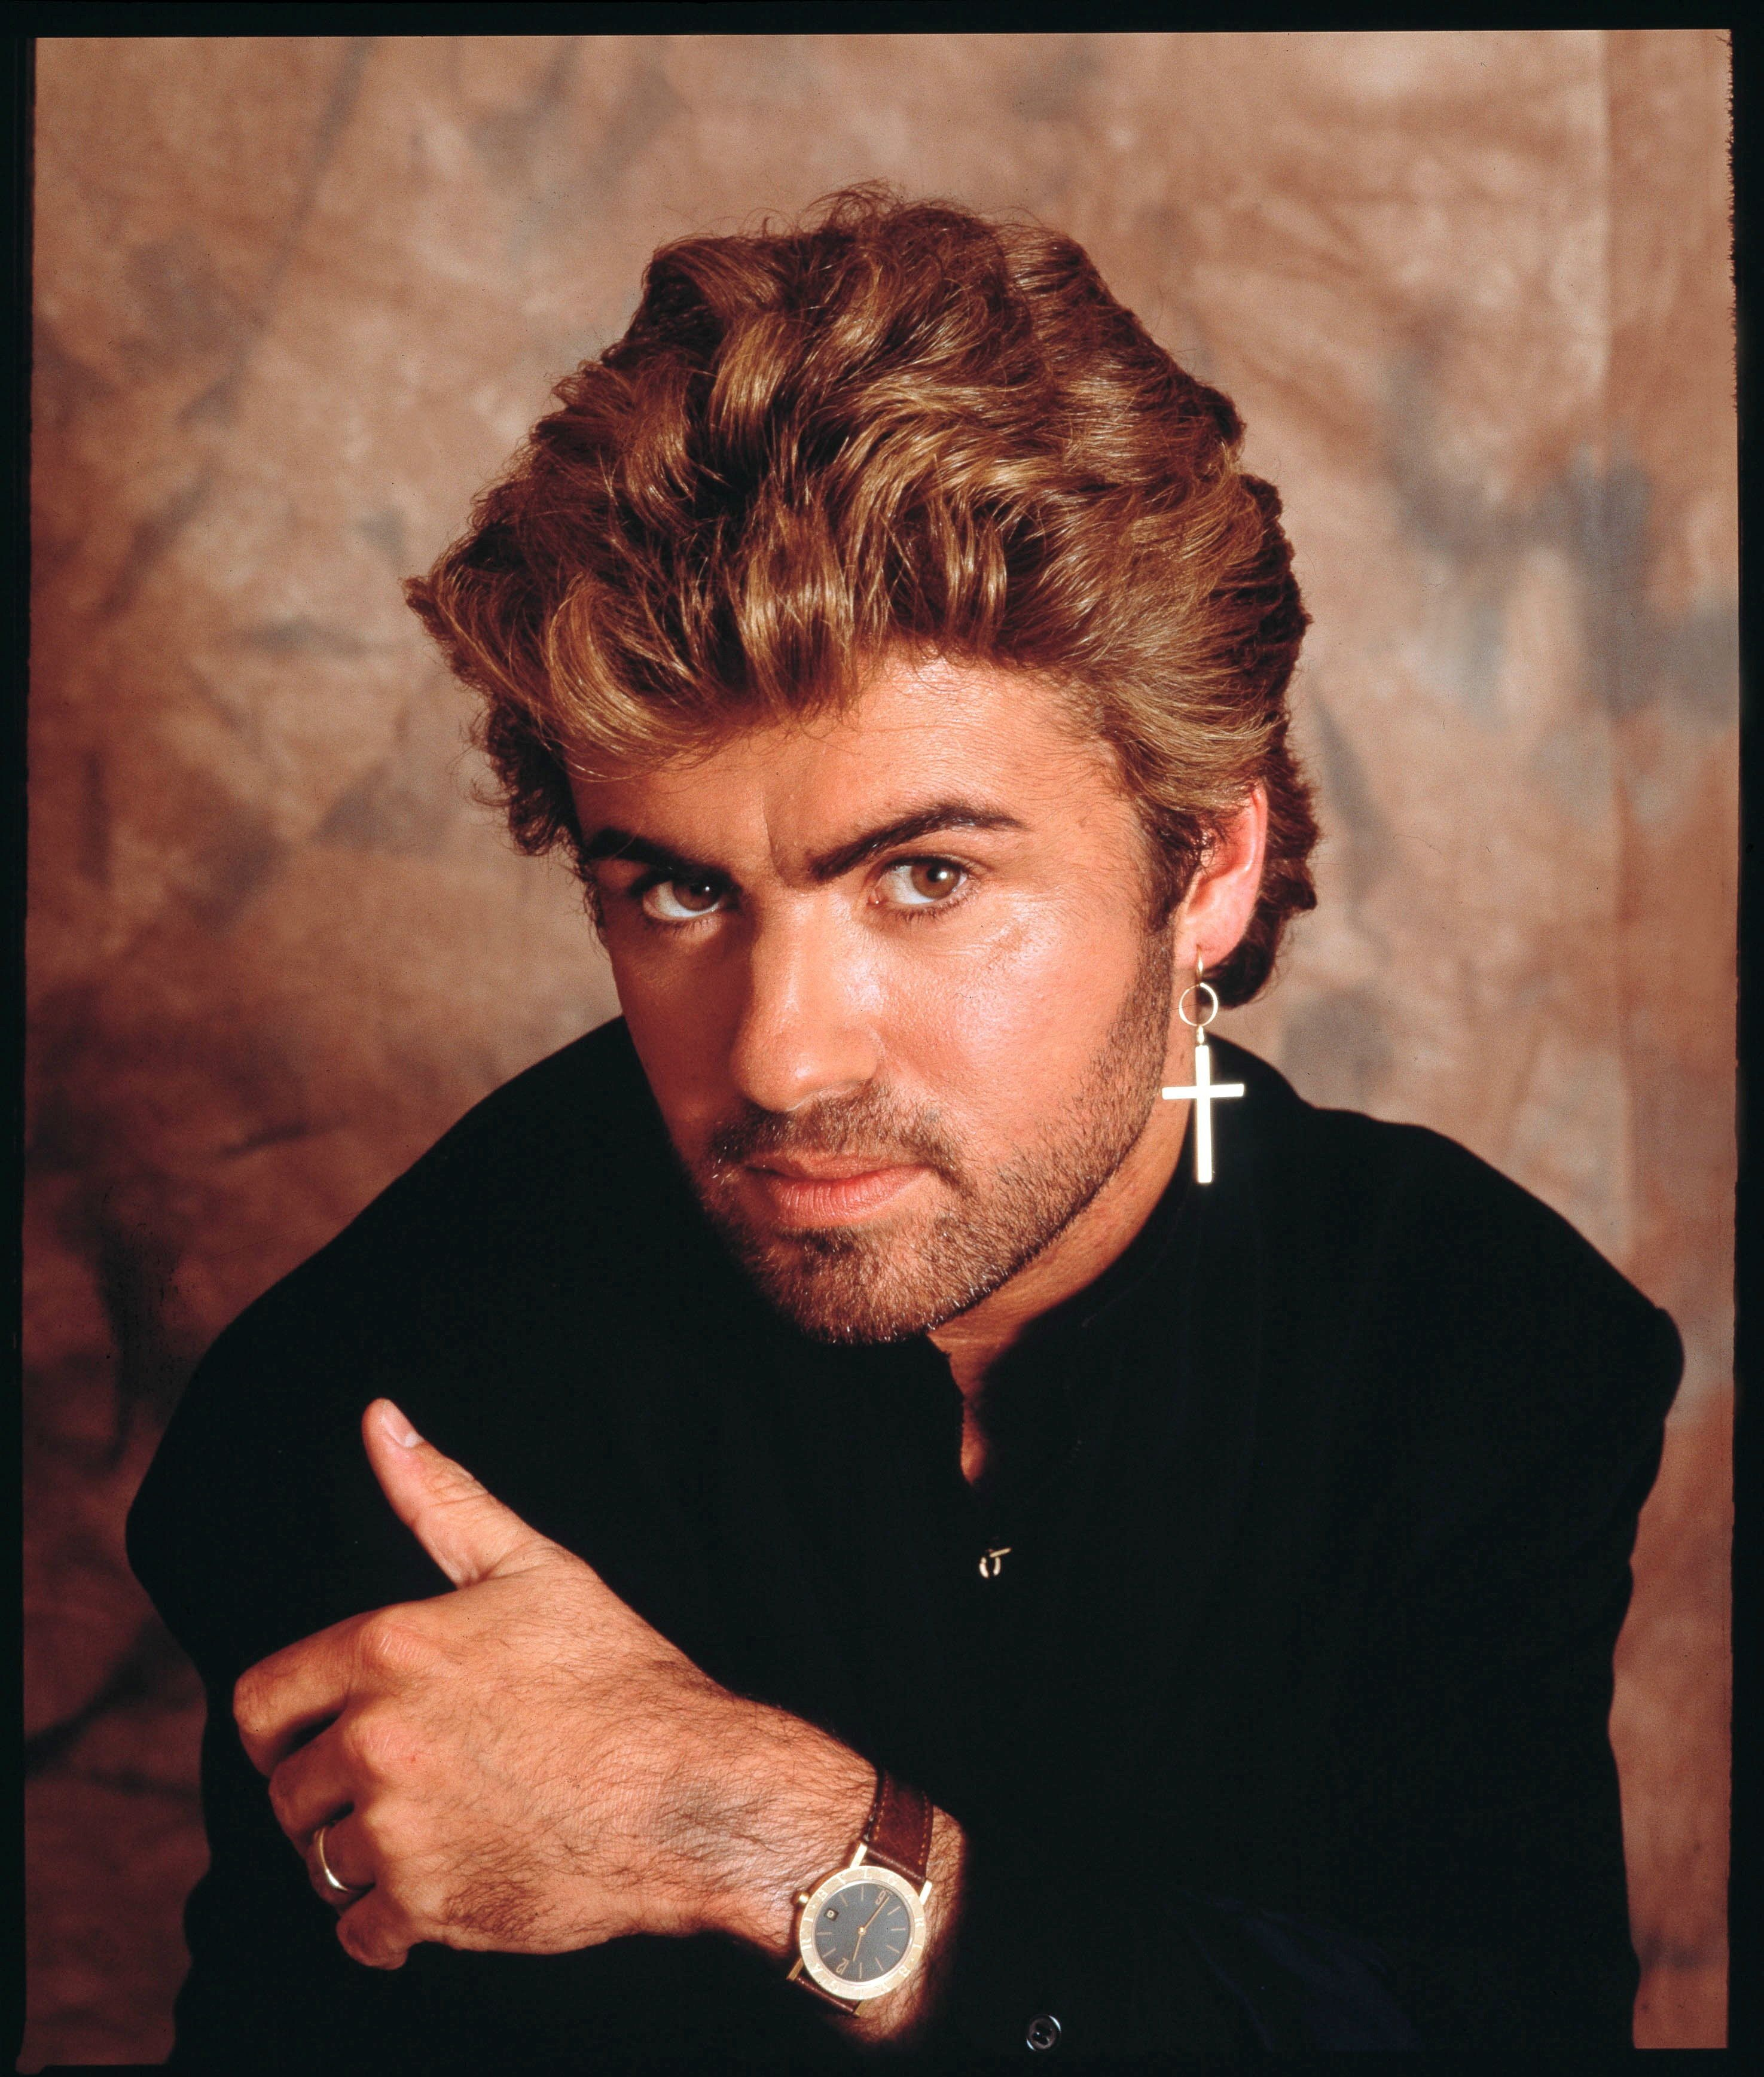 Back In 1990, George Michael Already Saw A Glaring Problem With The Modern